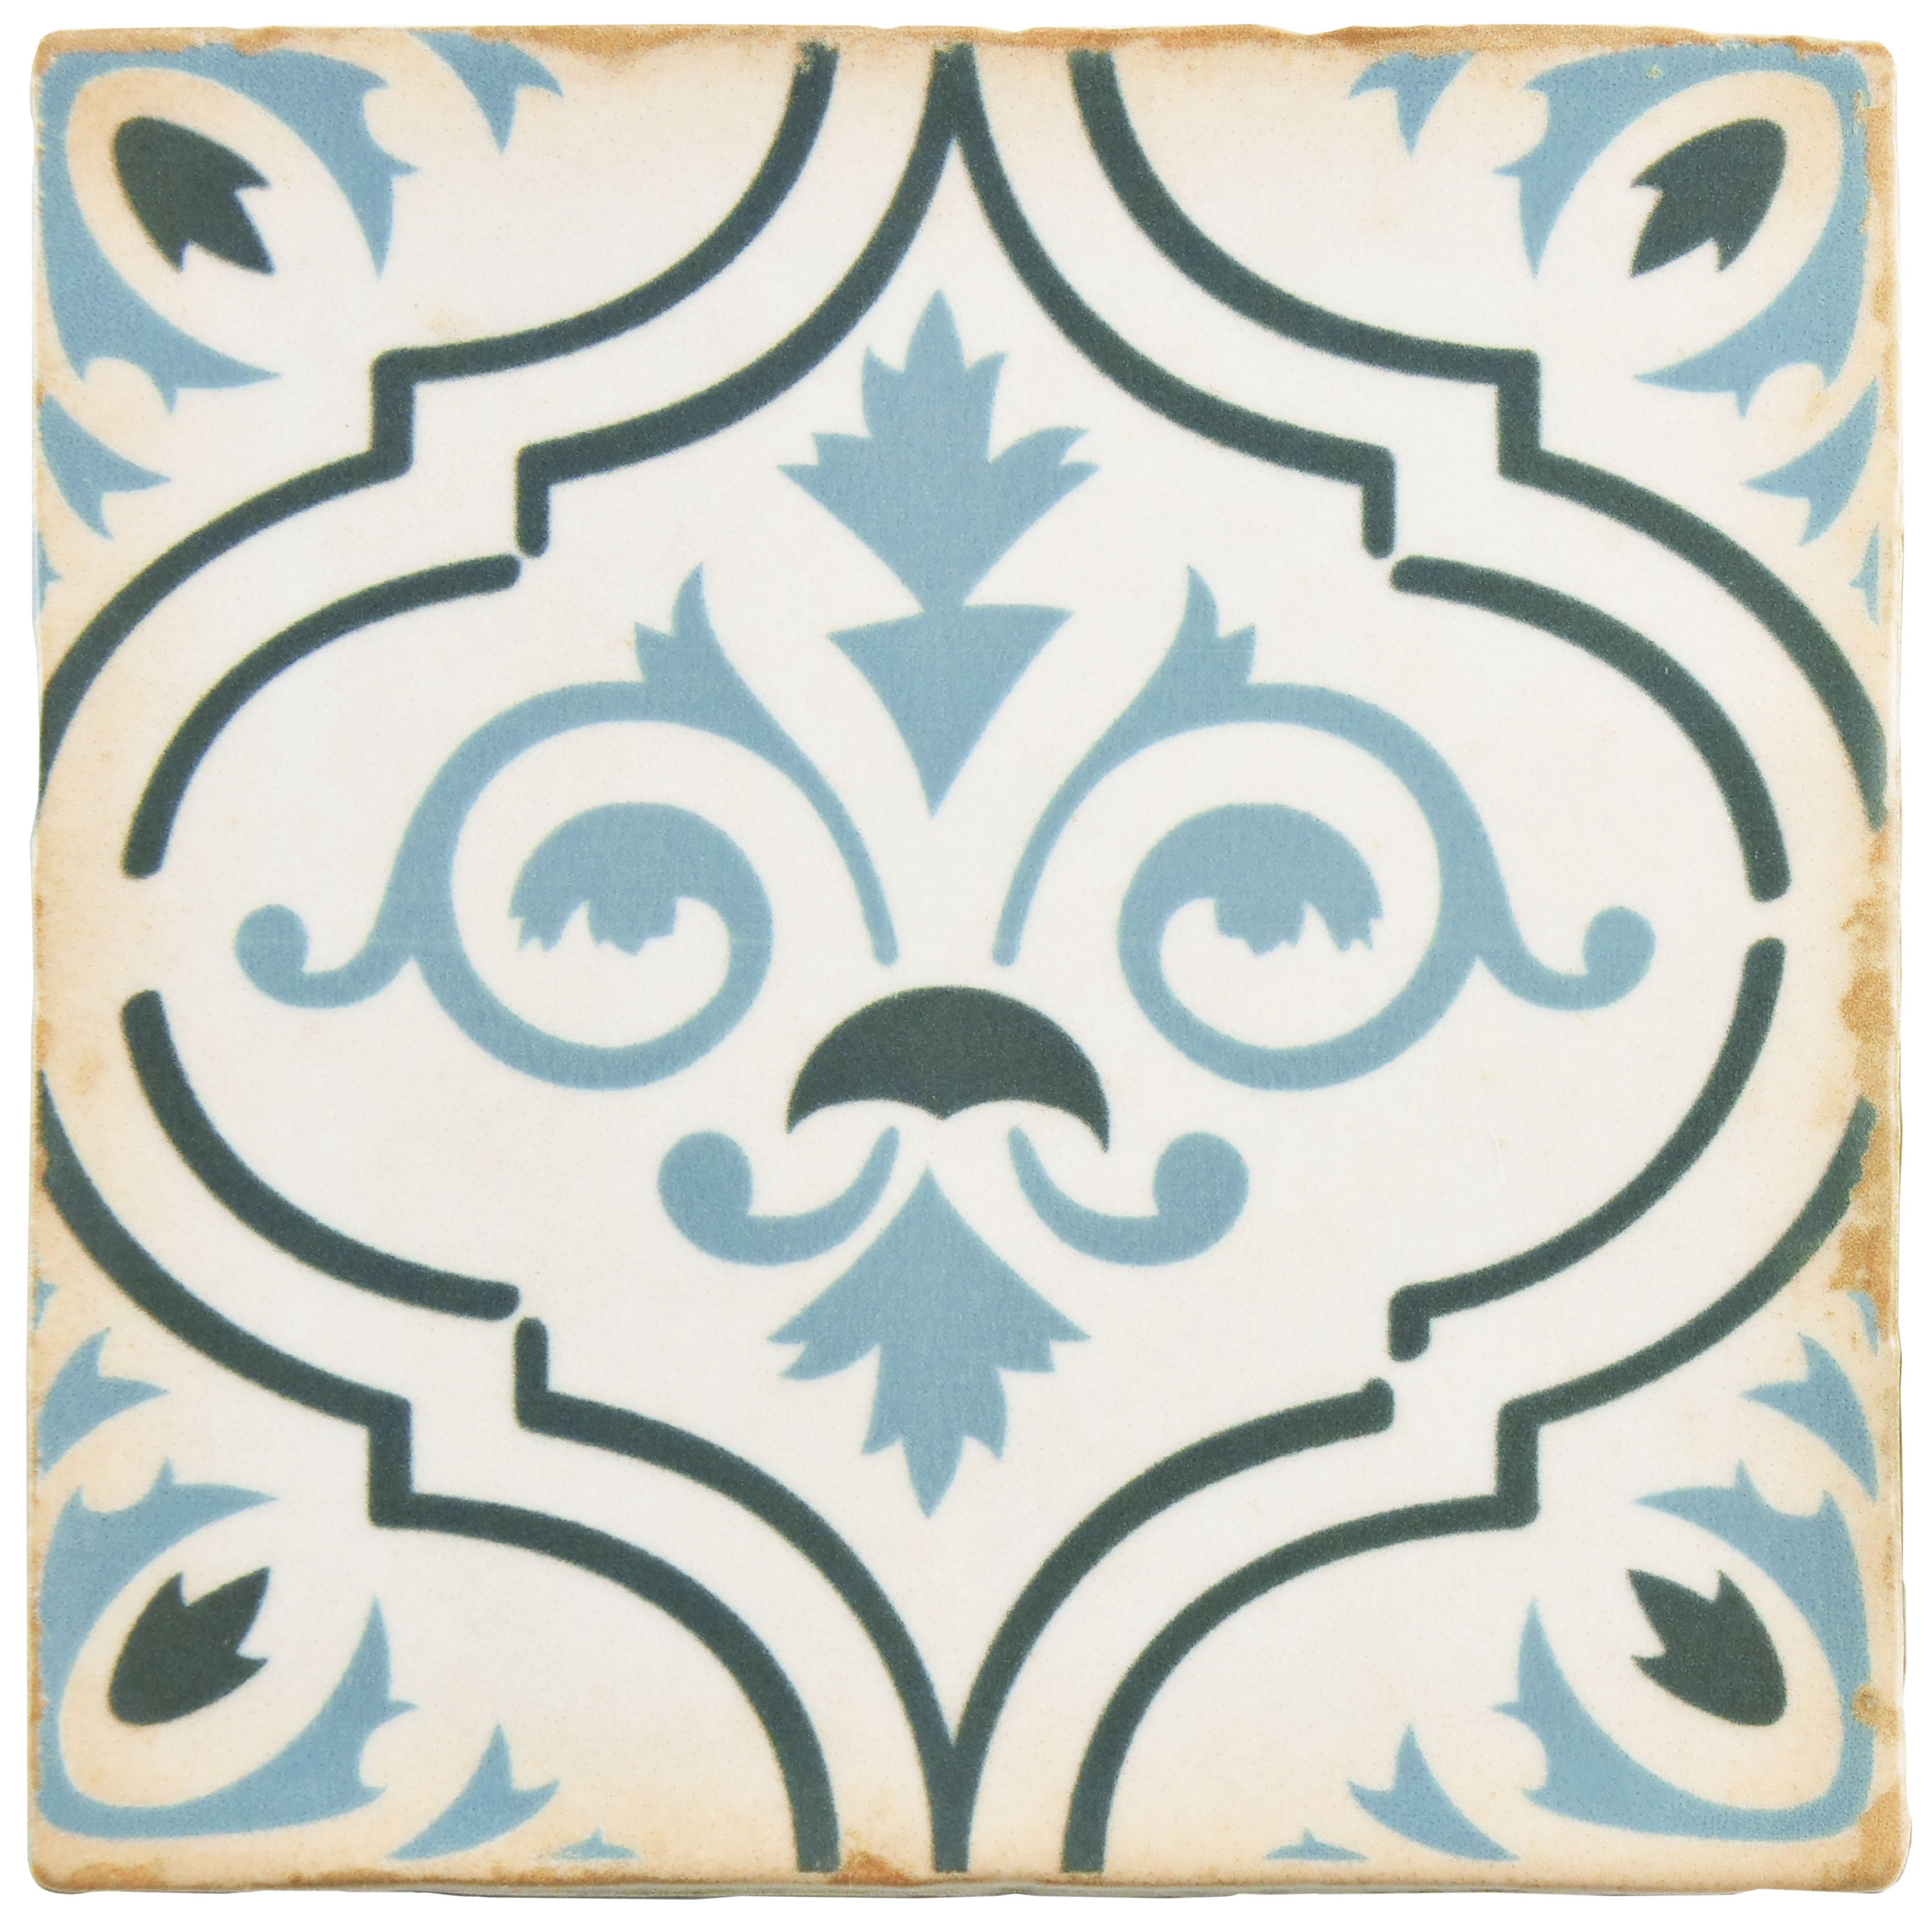 Somertile 4 875x4 875 Inch Chronicle Fleur De Lis Ceramic Floor And Wall Tile 32 Tiles 5 9 Sqft Free Shipping On Orders Over 45